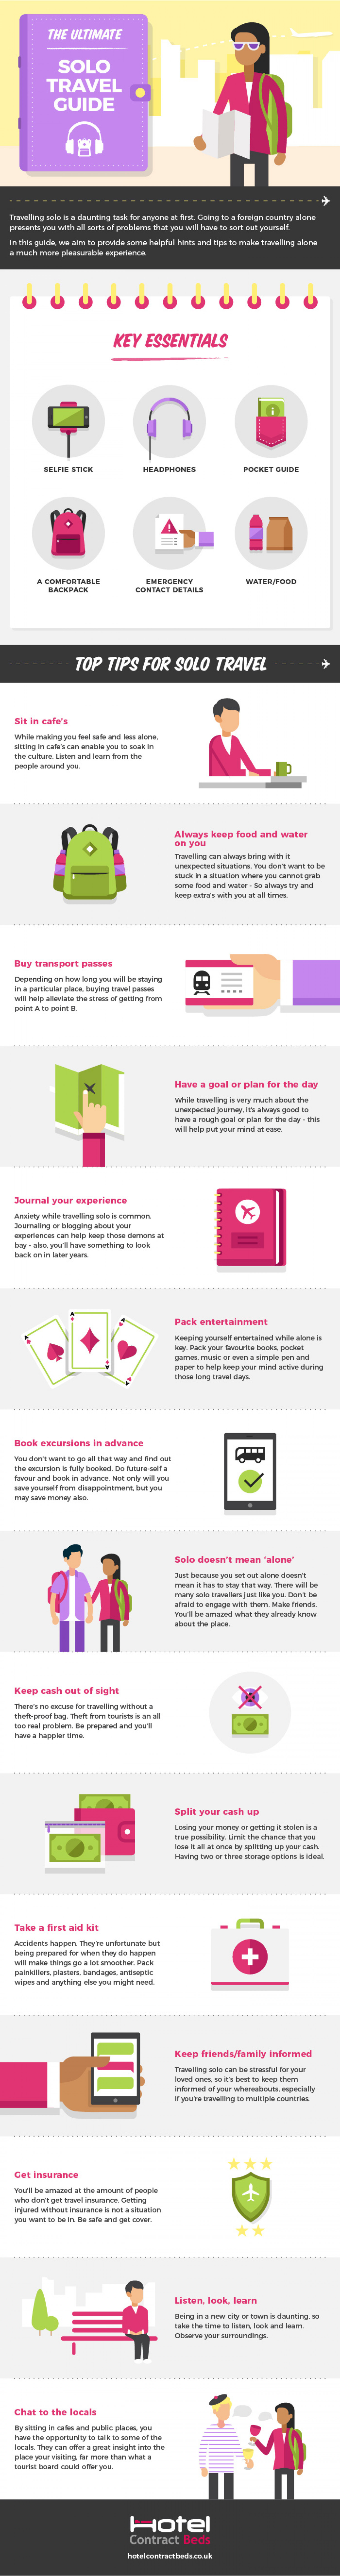 The Ultimate Solo Travel Guide Infographic